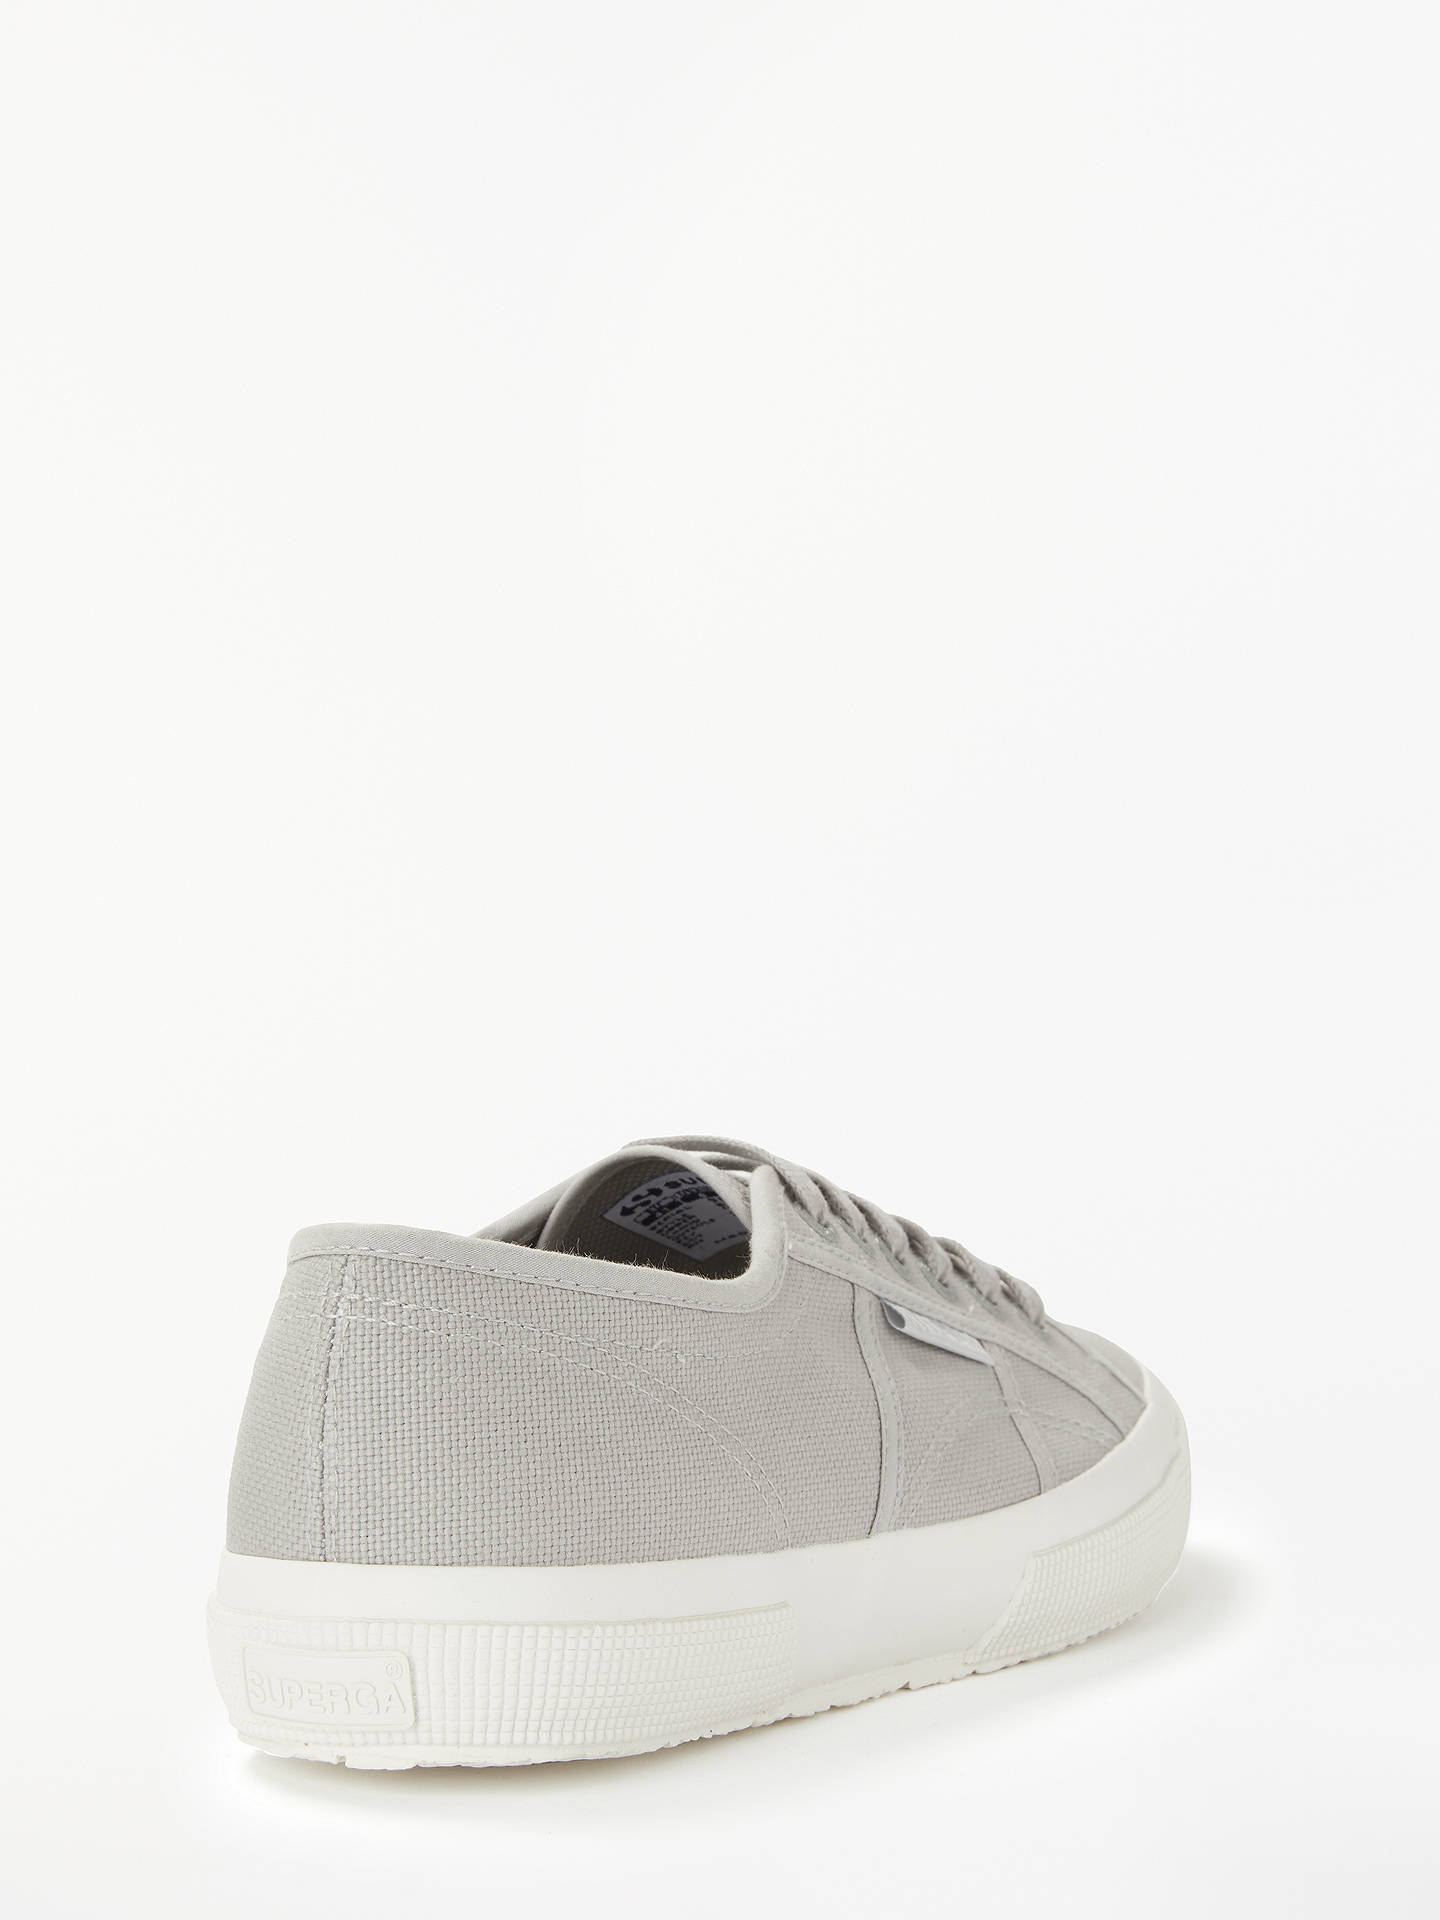 Buy Superga Cotu Classic Lace Up Plimsolls, Grey, 5 Online at johnlewis.com